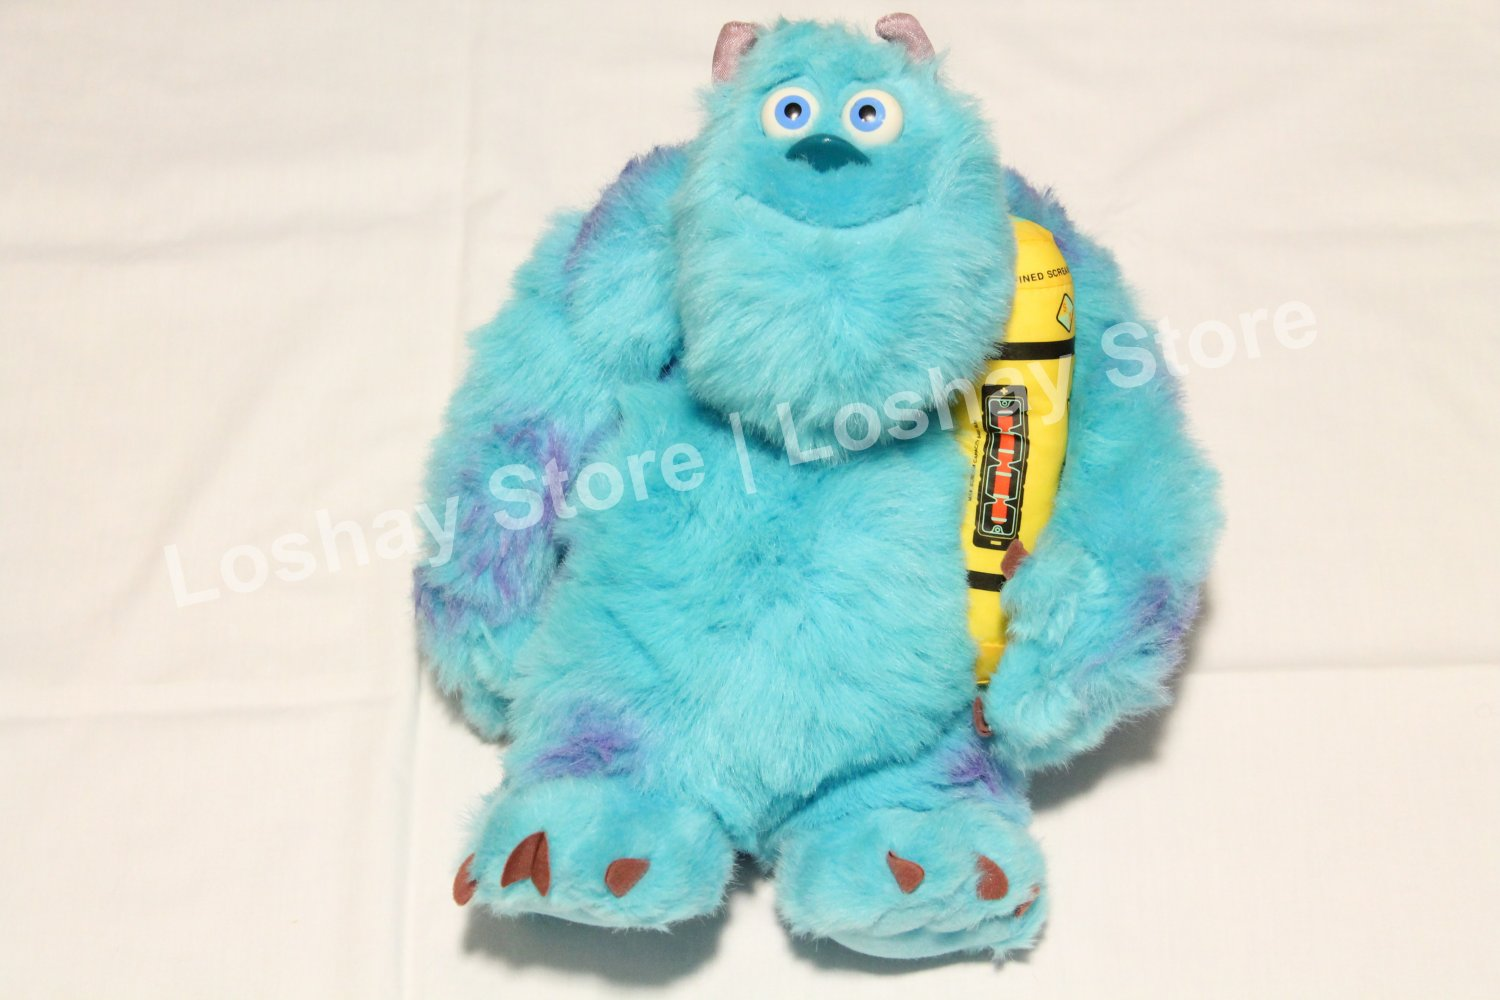 Glow Toys For Bedtime Hasbro Monster 39s Inc Plush Soft Talking Bedtime Sulley W